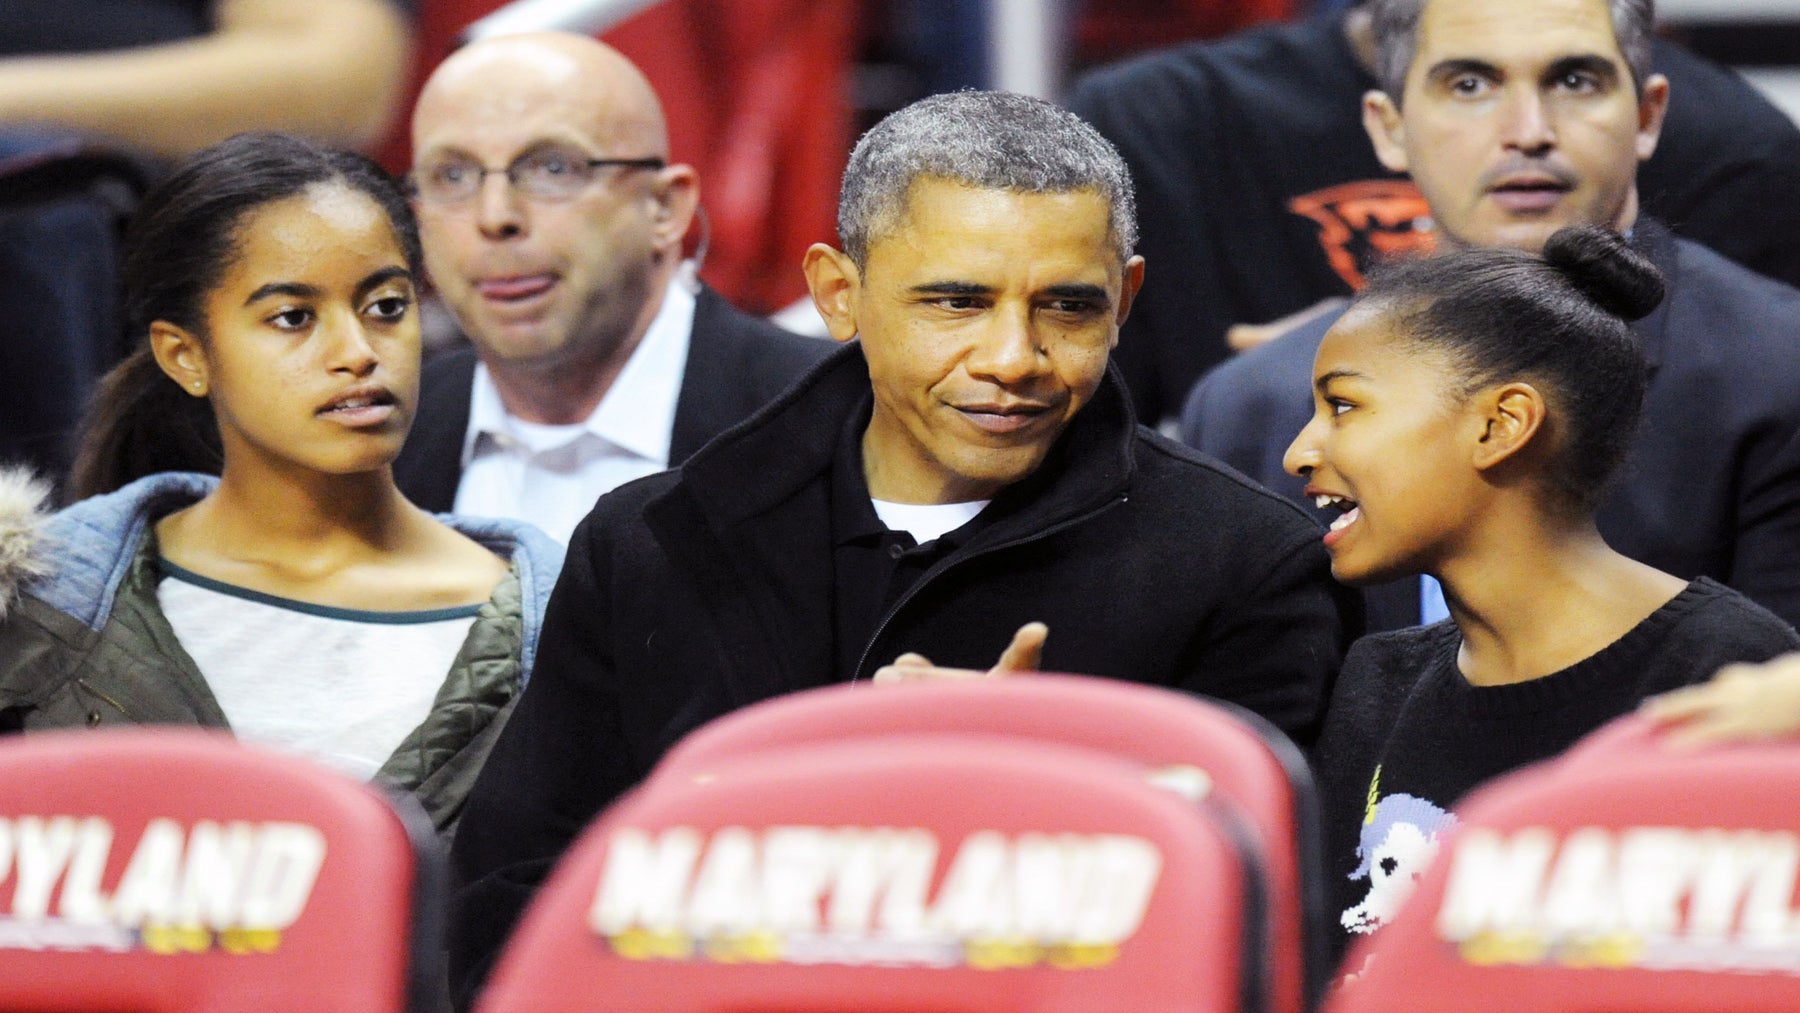 President Obama Reveals the Dating Advice He Gave His Daughters